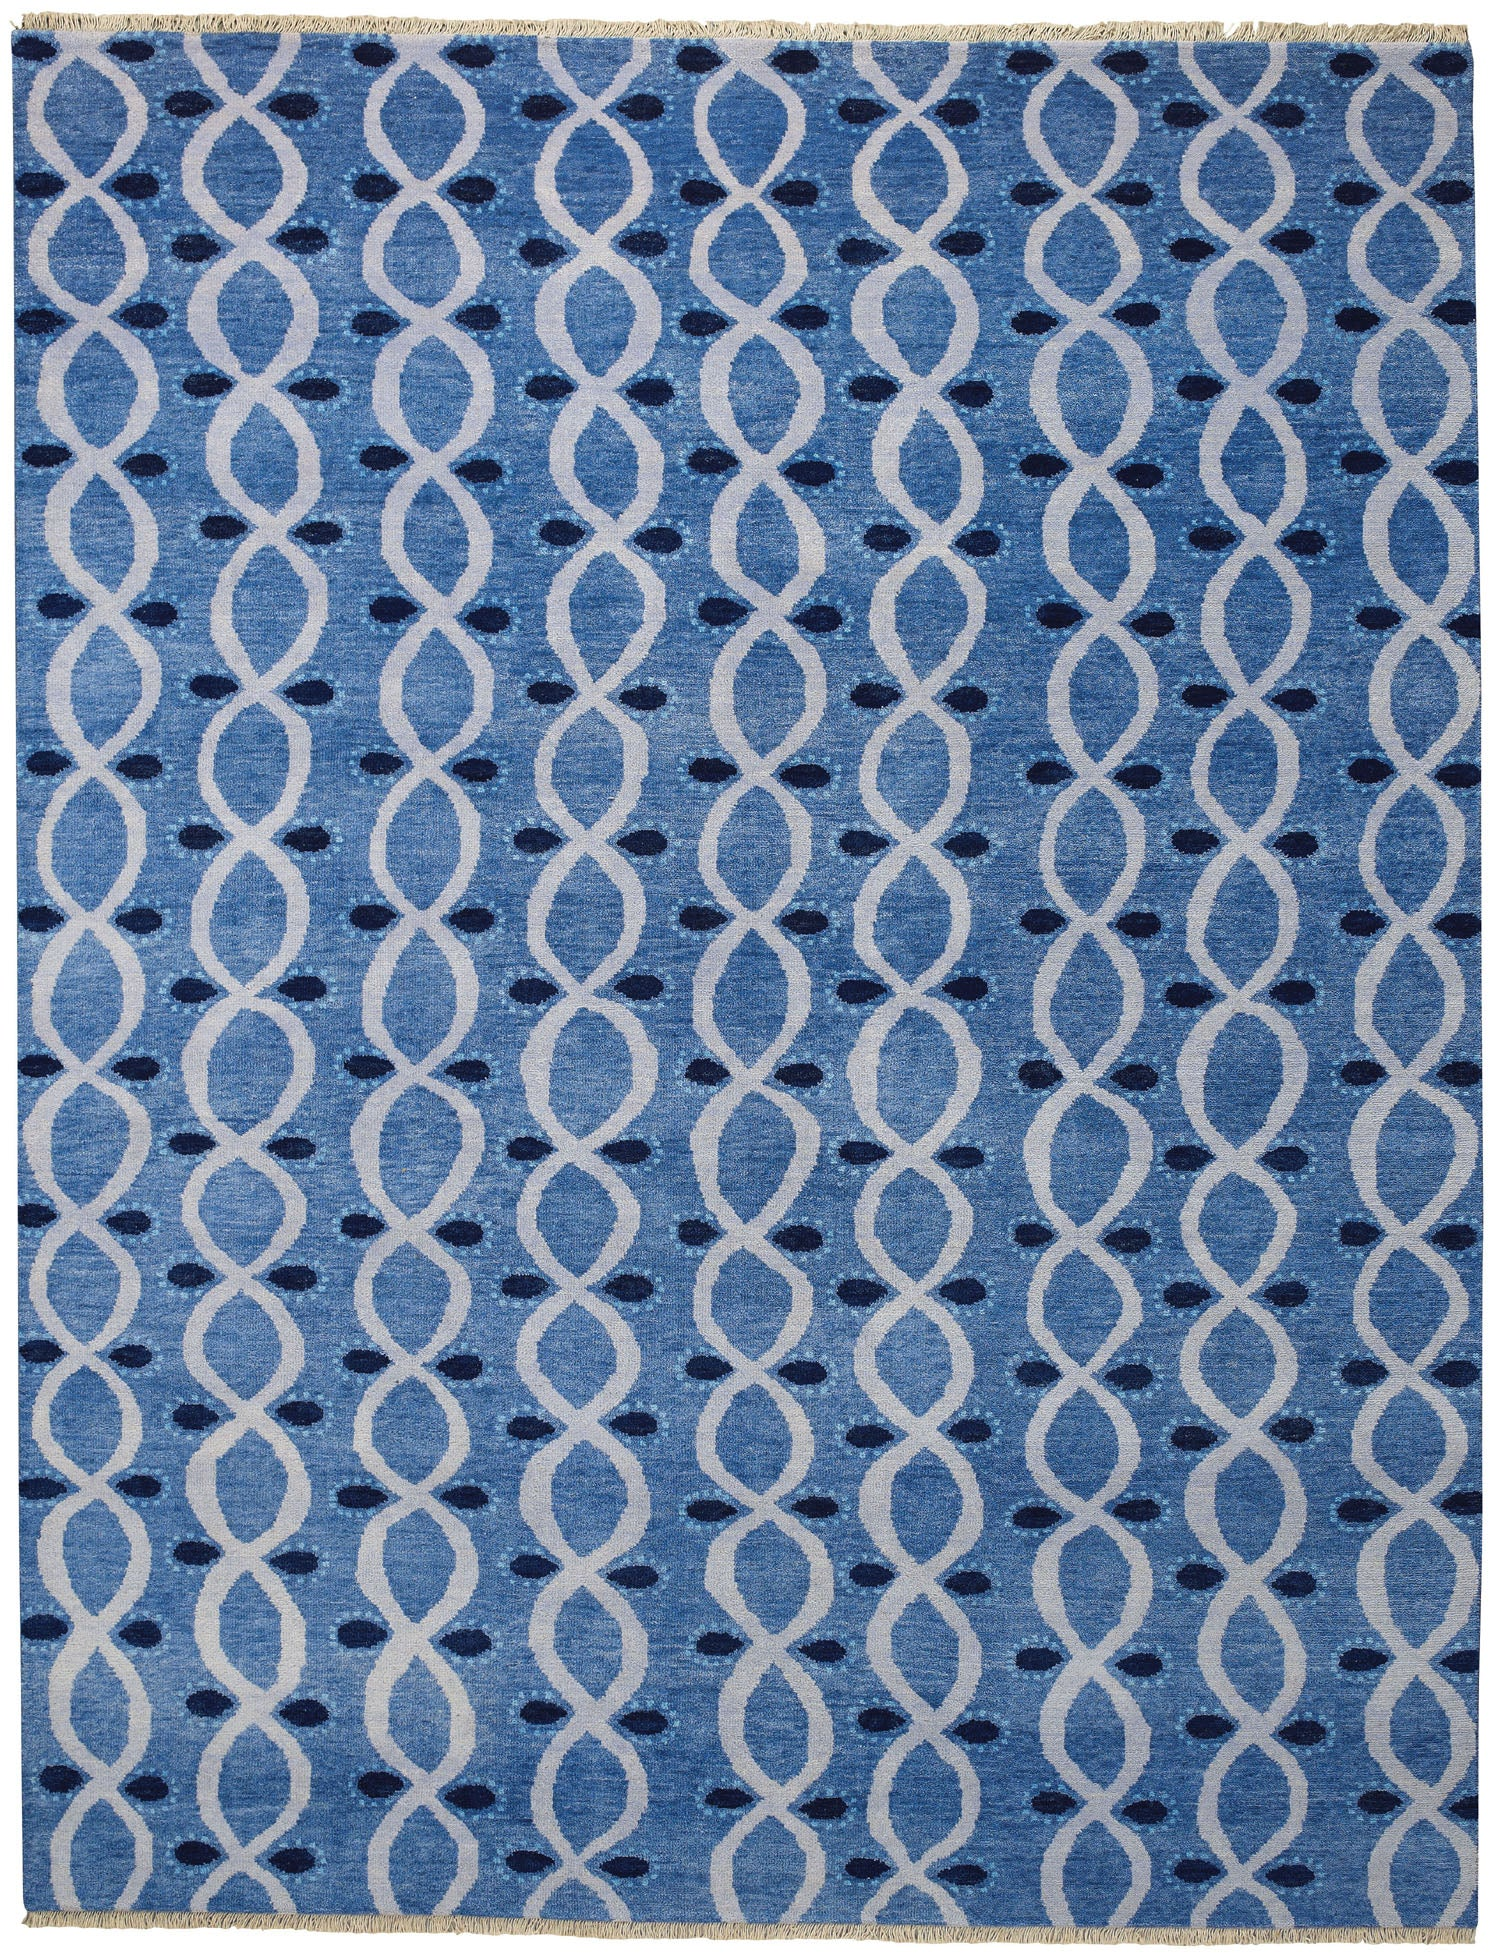 Capel Eternity 1076 Blue 400 Area Rug by Hable Construction main image